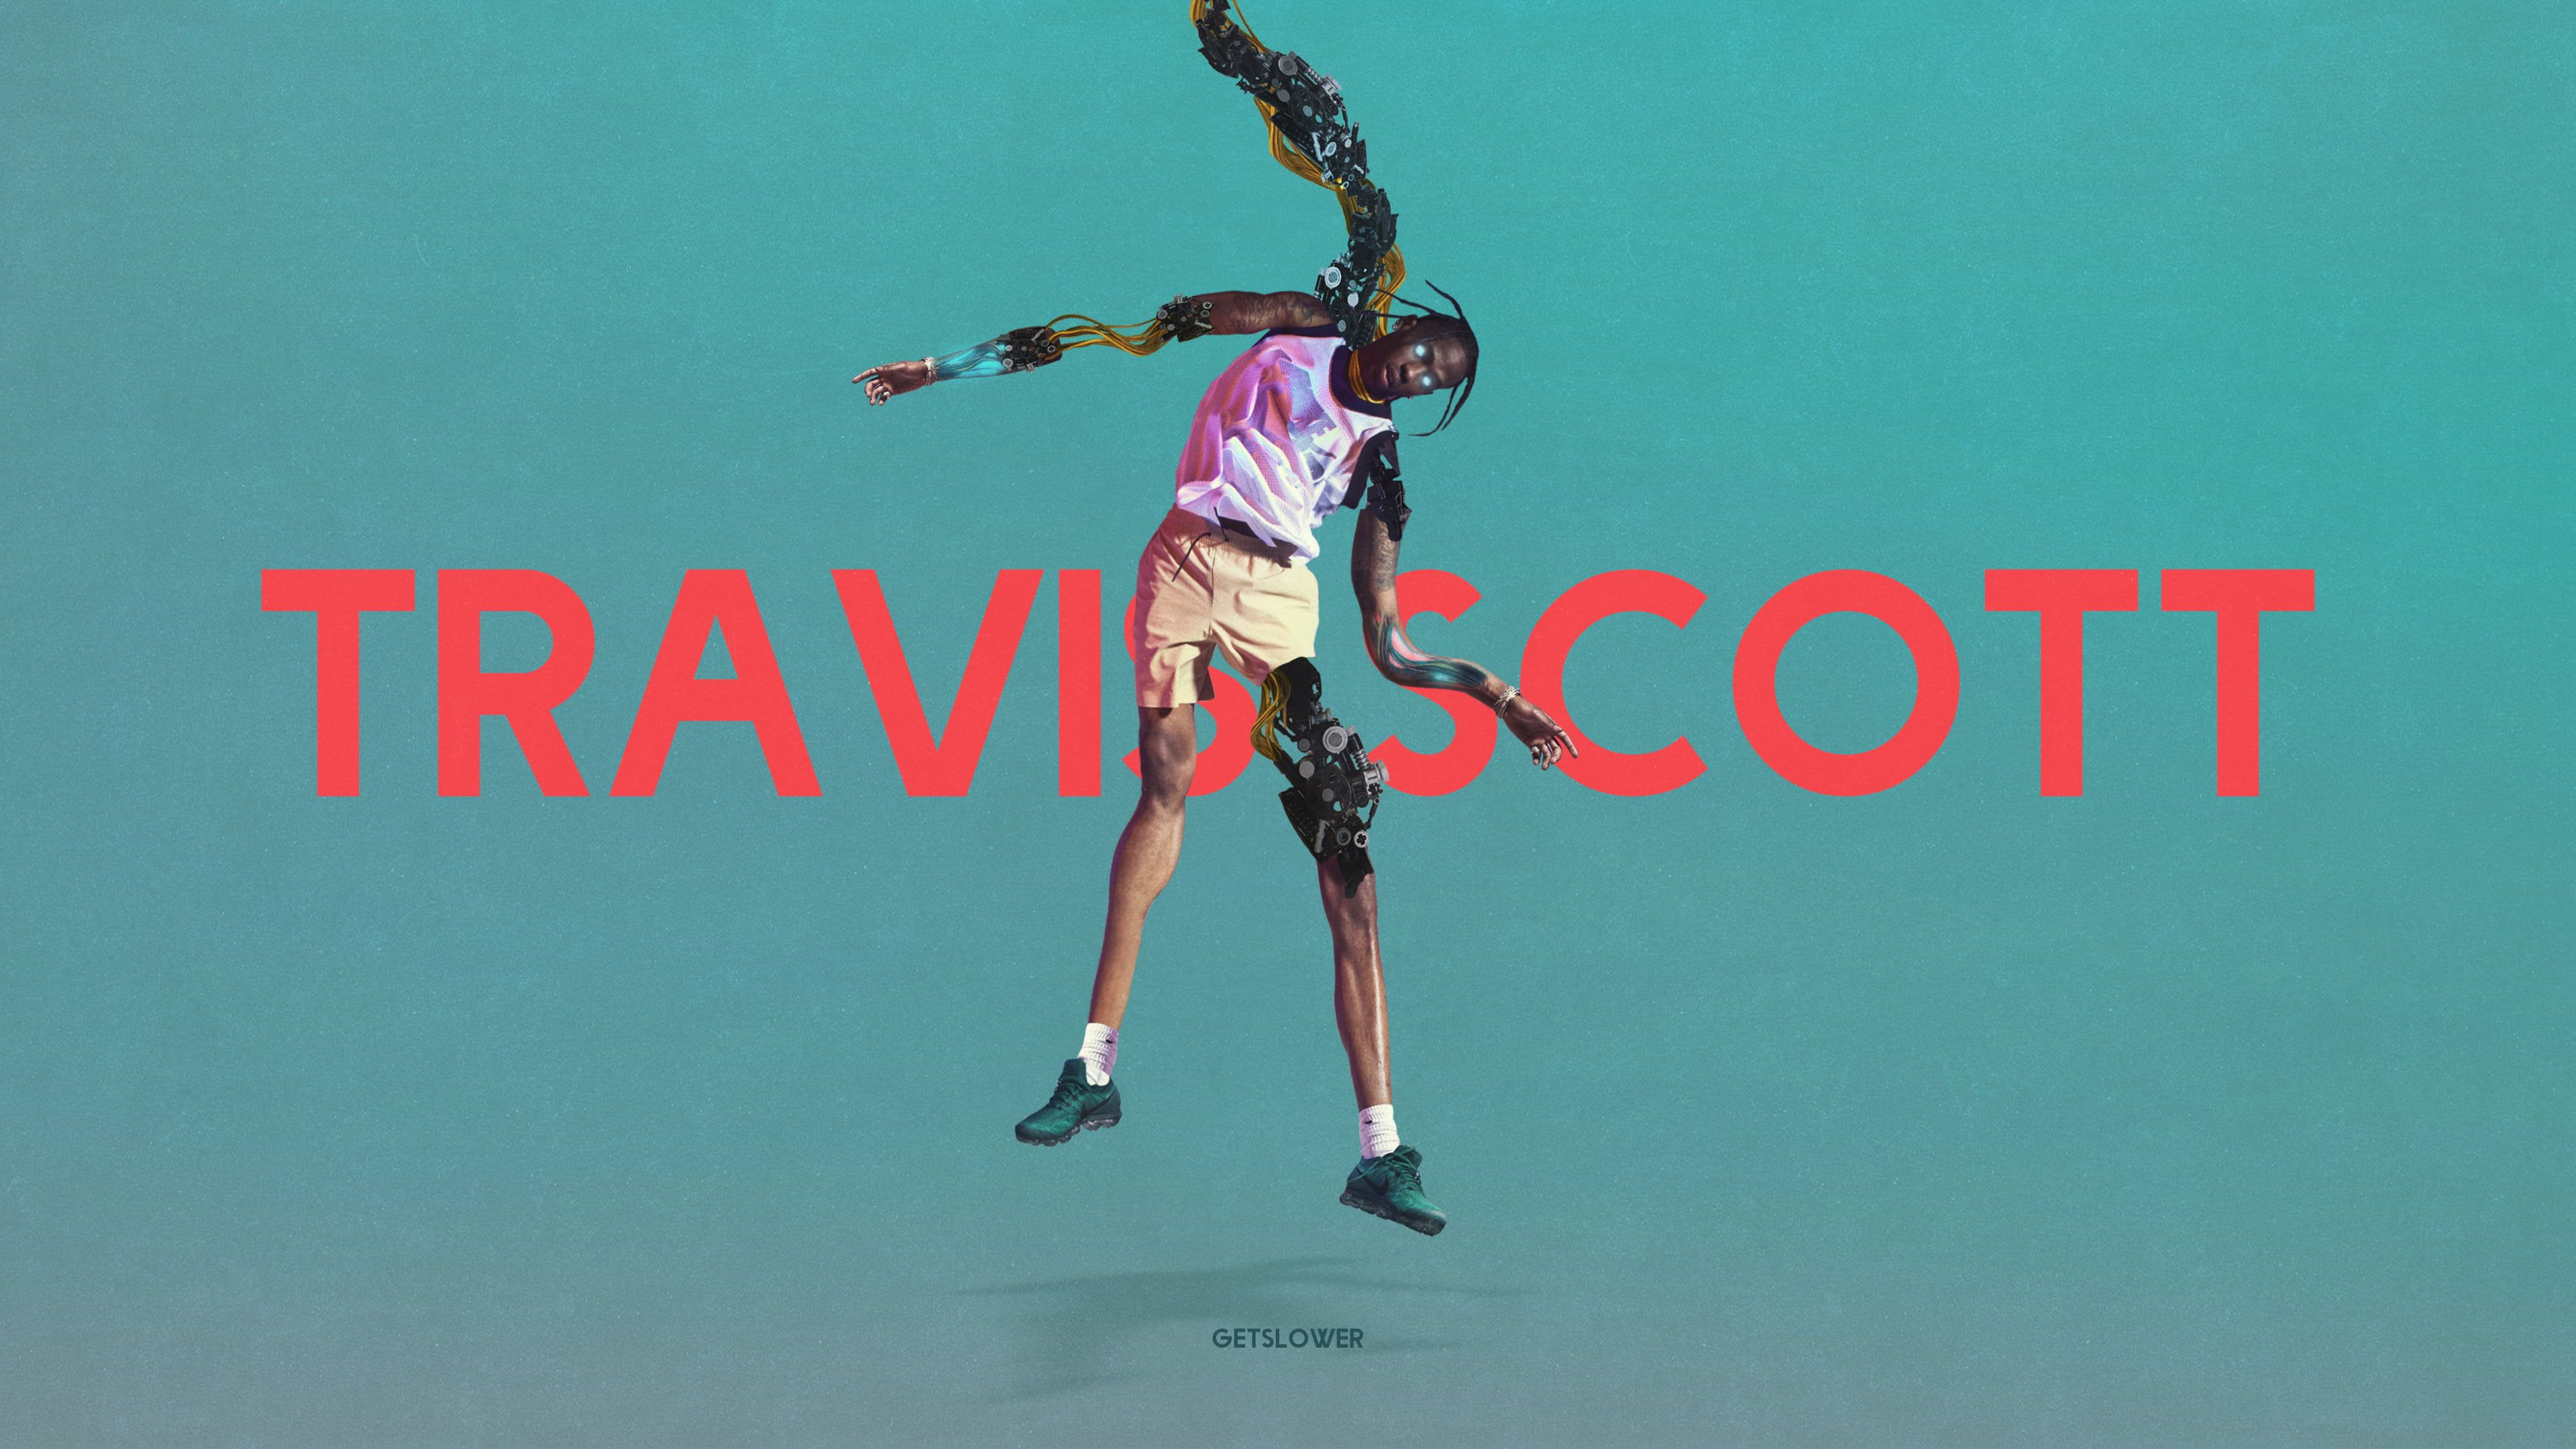 Fortnite Travis Scott Wallpaper For Mobile Phone Tablet Desktop Computer And Other In 2020 Travis Scott Wallpapers Travis Scott Concert Wallpapers For Mobile Phones